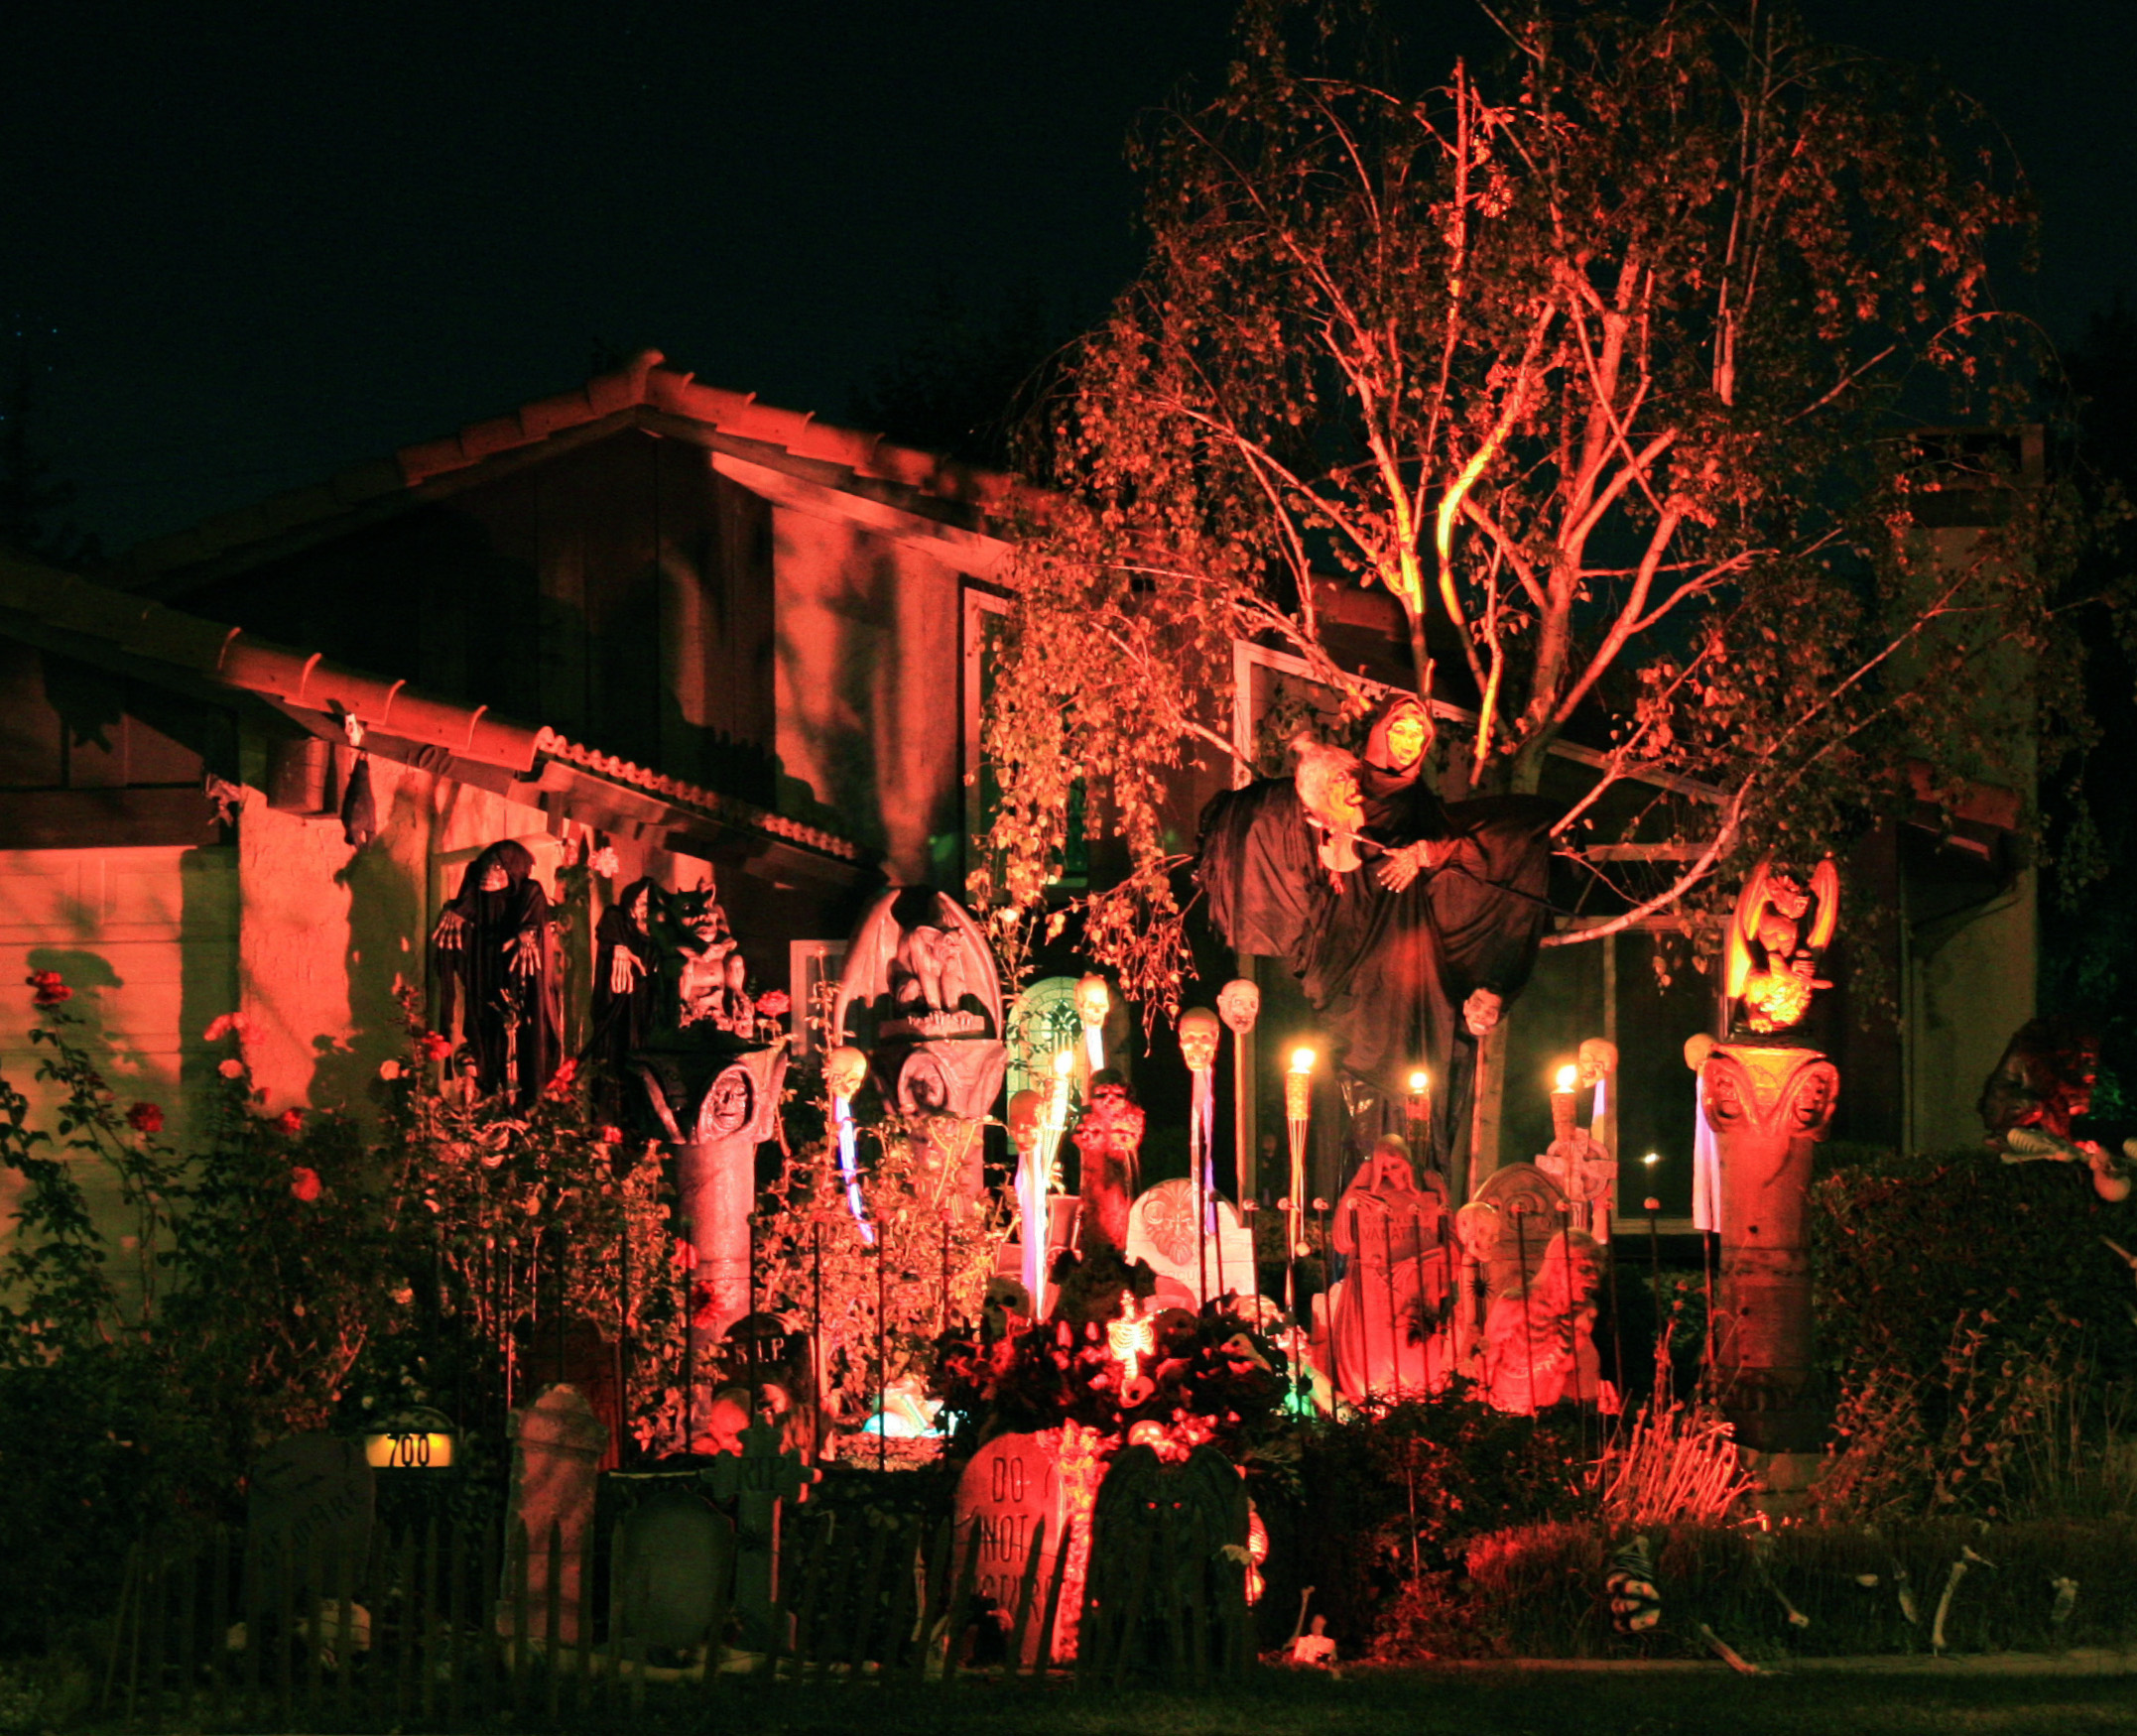 decorating ideas for a haunted house - Halloween House Decoration Ideas